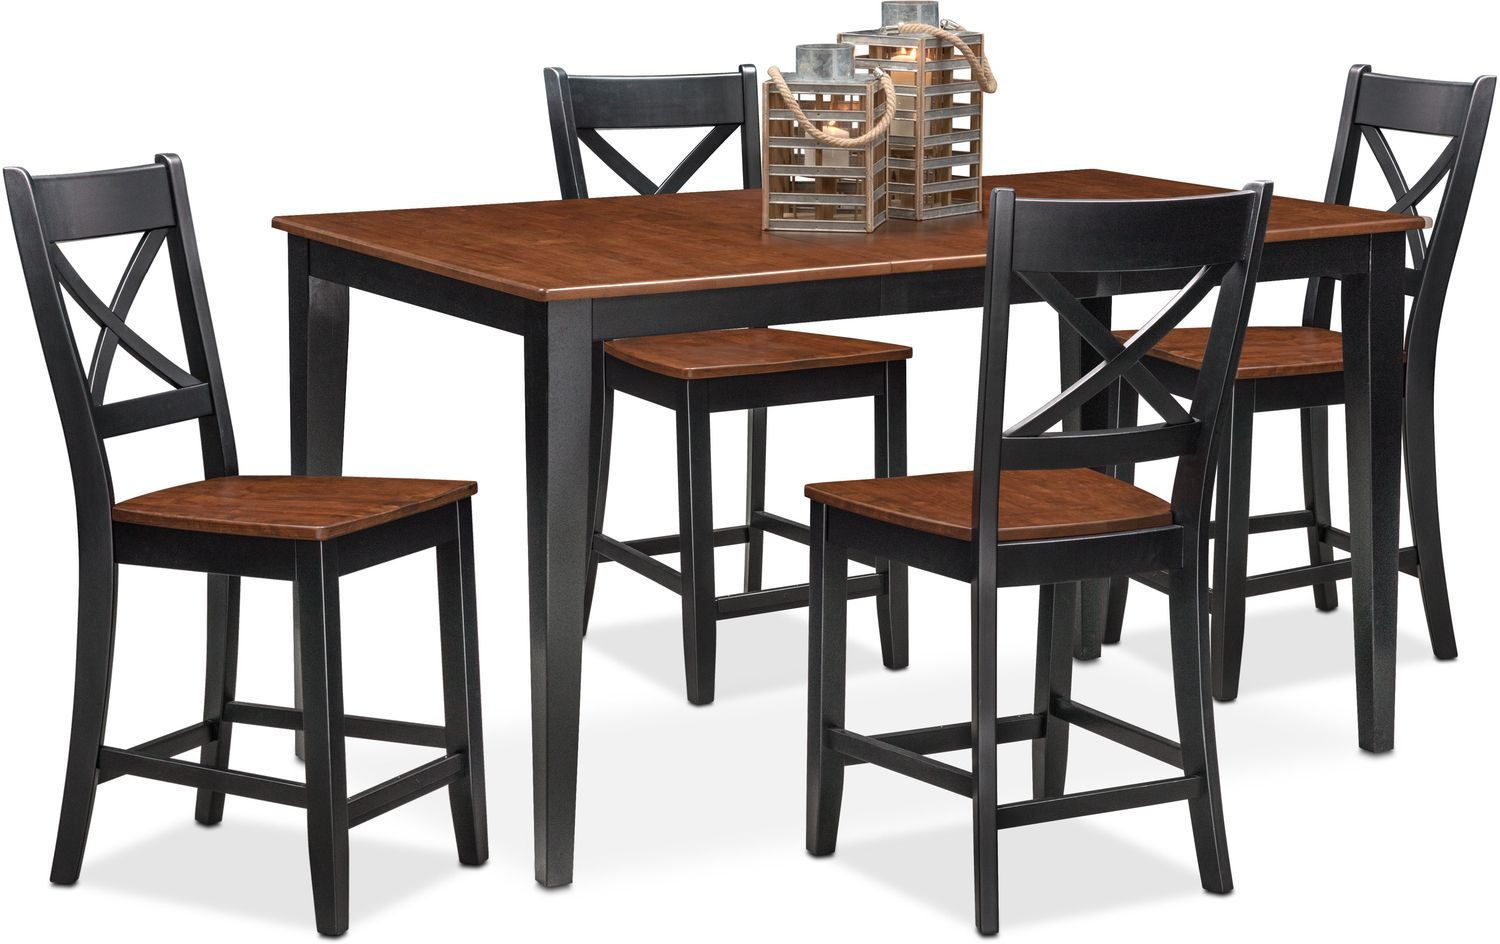 Counter Height Dining Tables: Nantucket Counter-Height Table And 4 Side Chairs